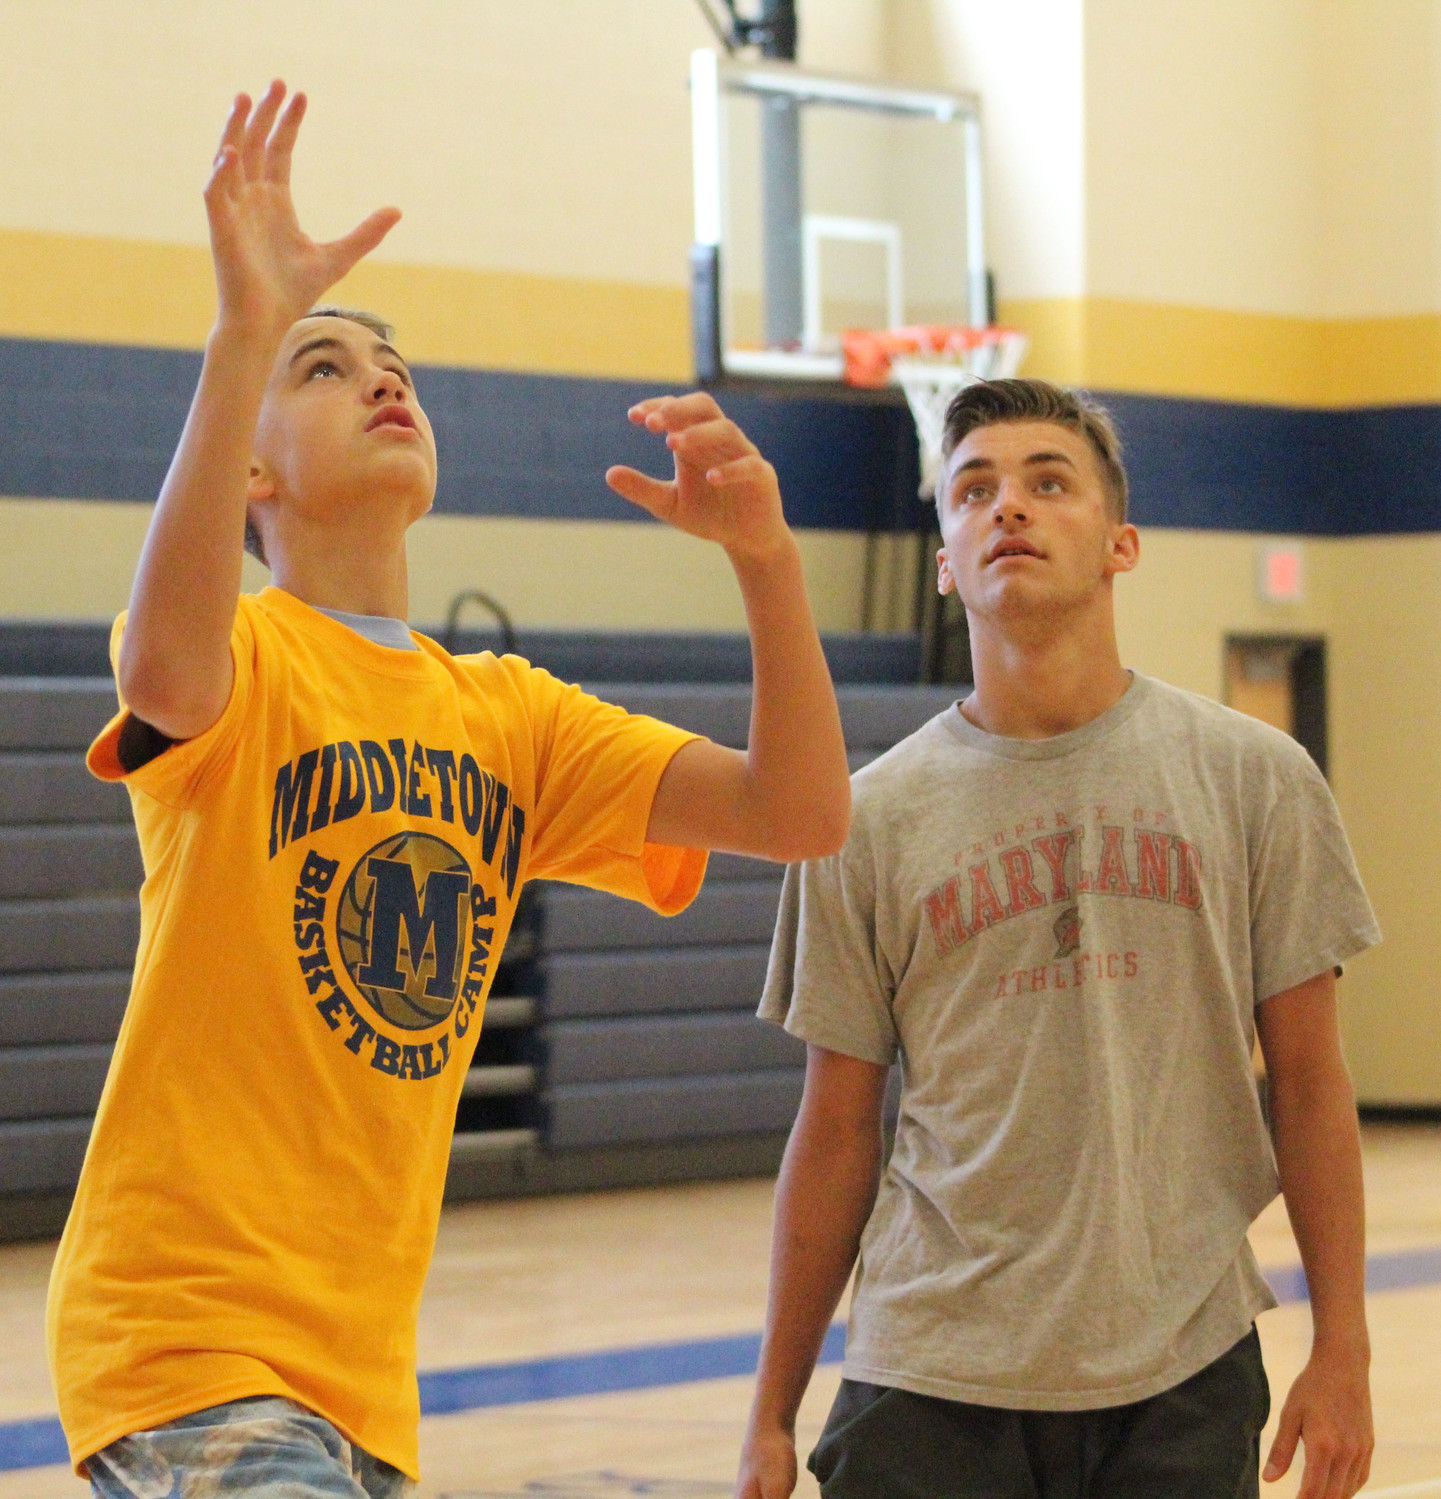 Eli Akins goes for the rebound during basketball camp on July 12.